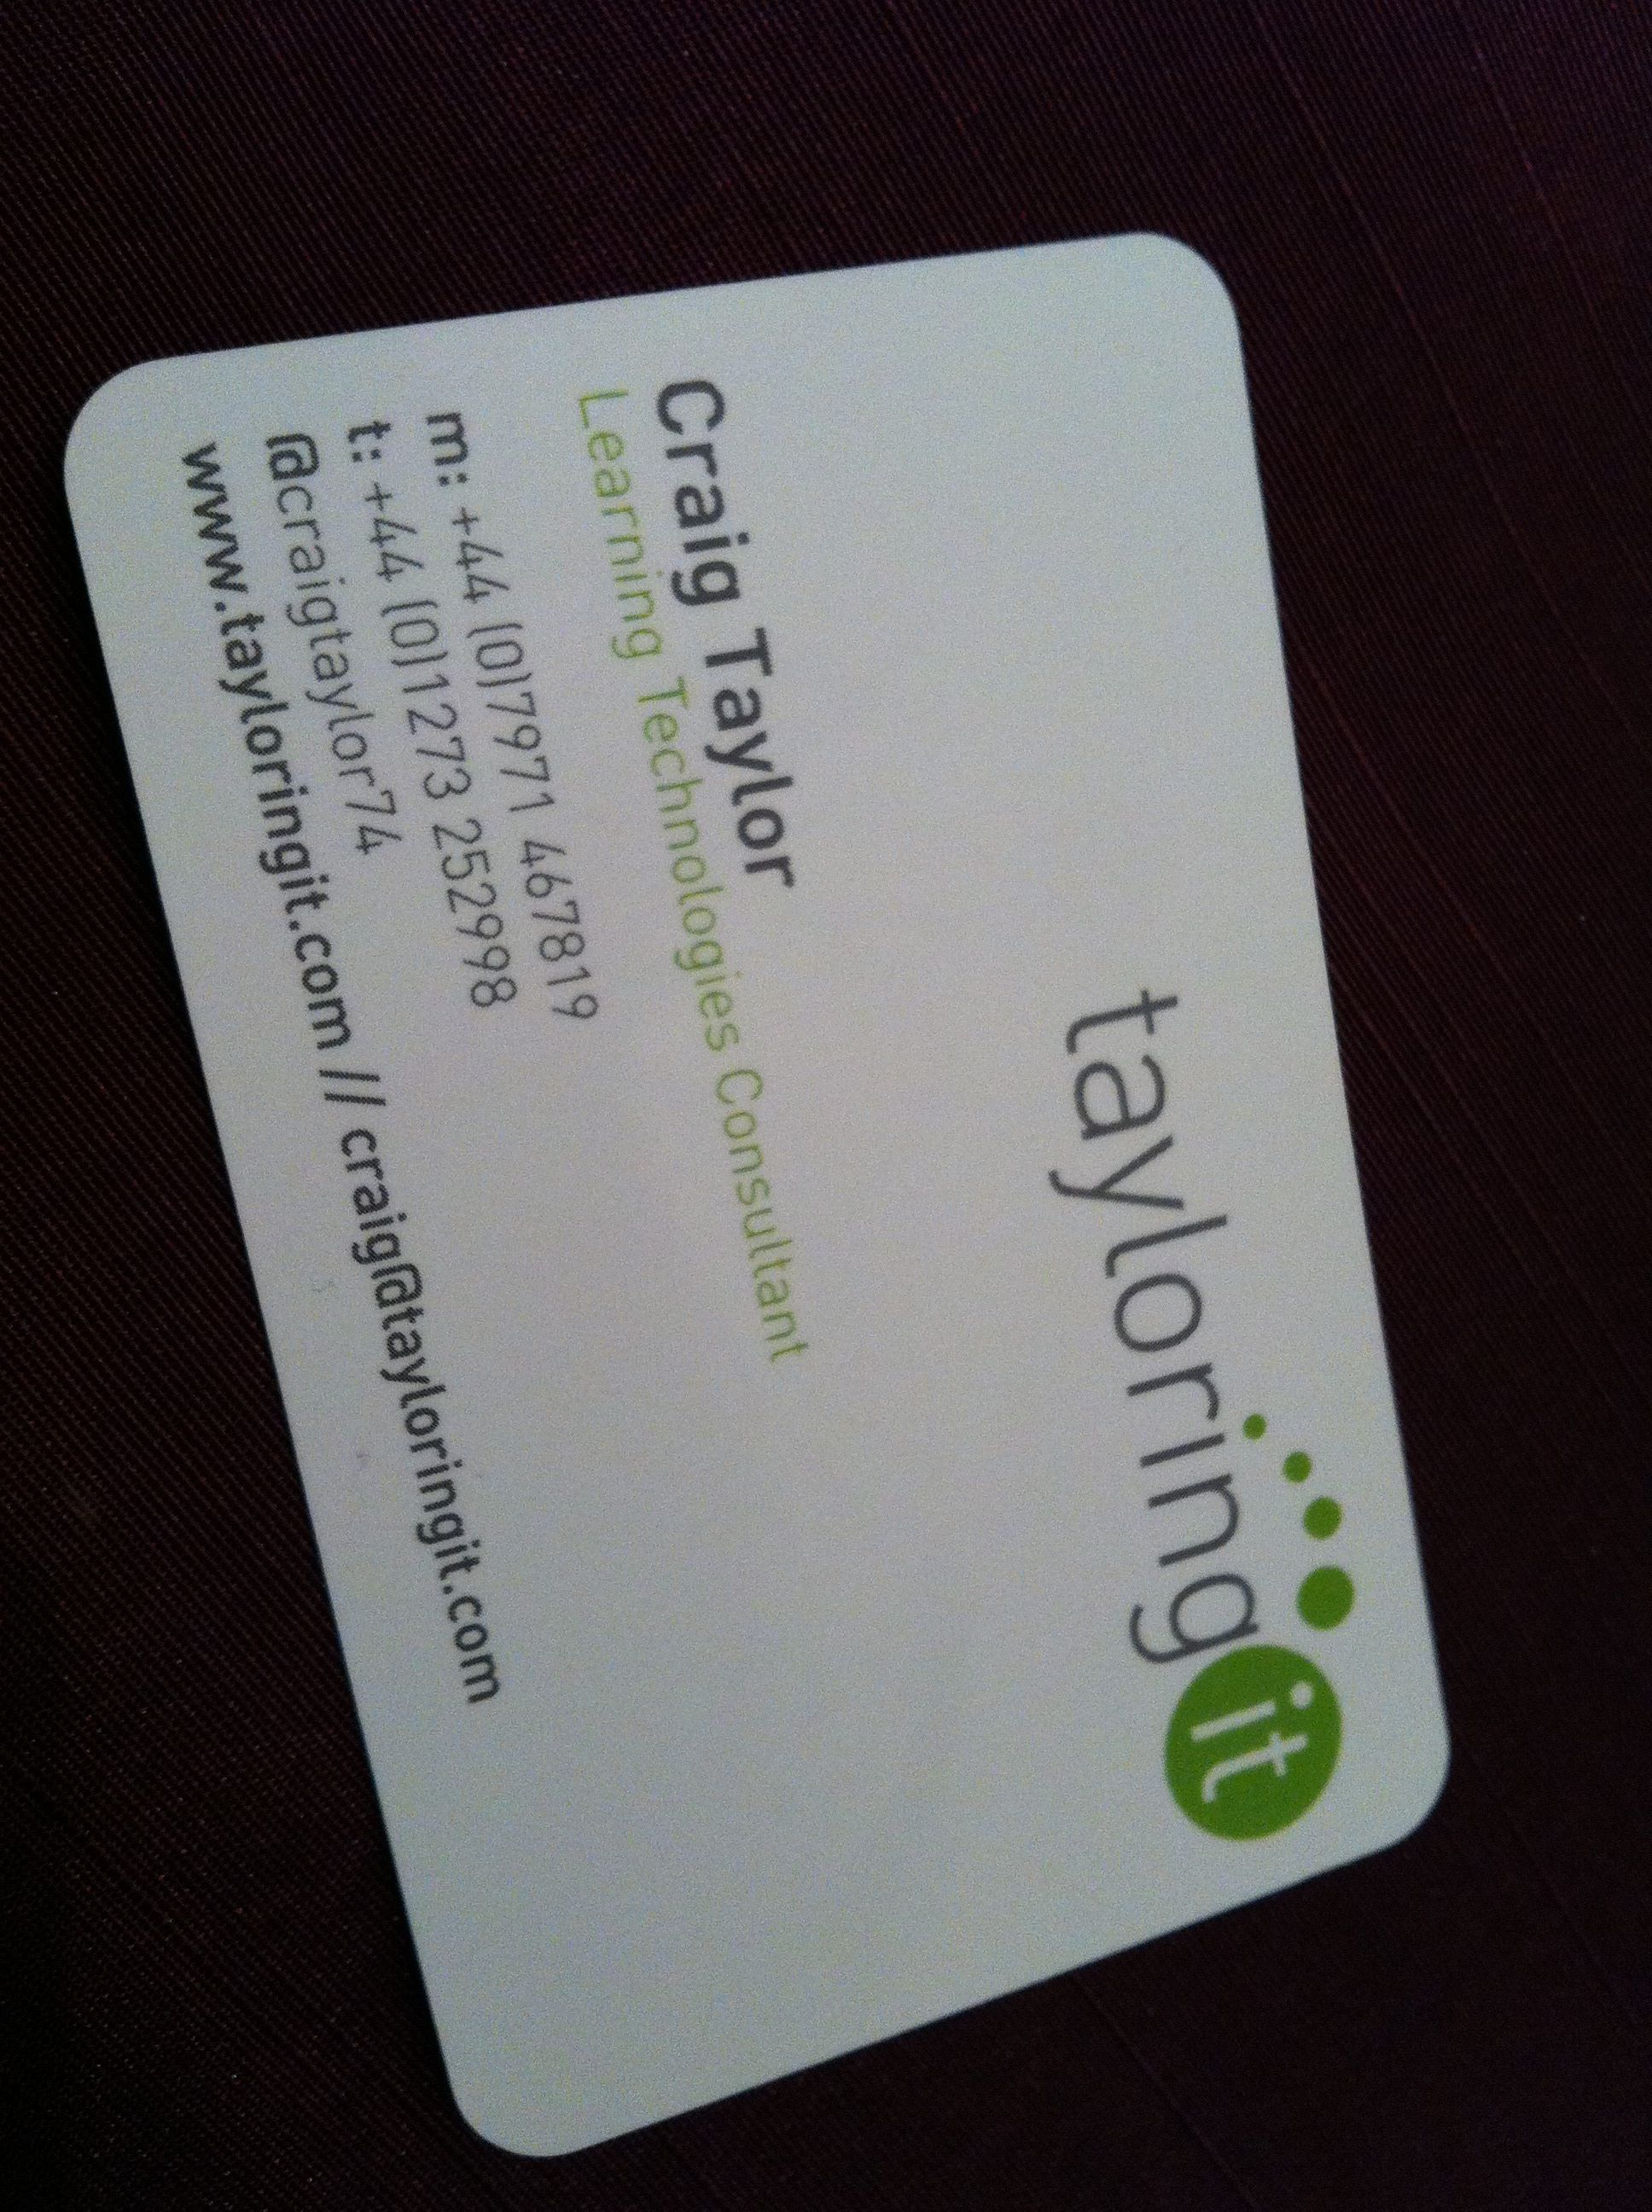 Generous Name On Business Card Gallery - Business Card Ideas ...